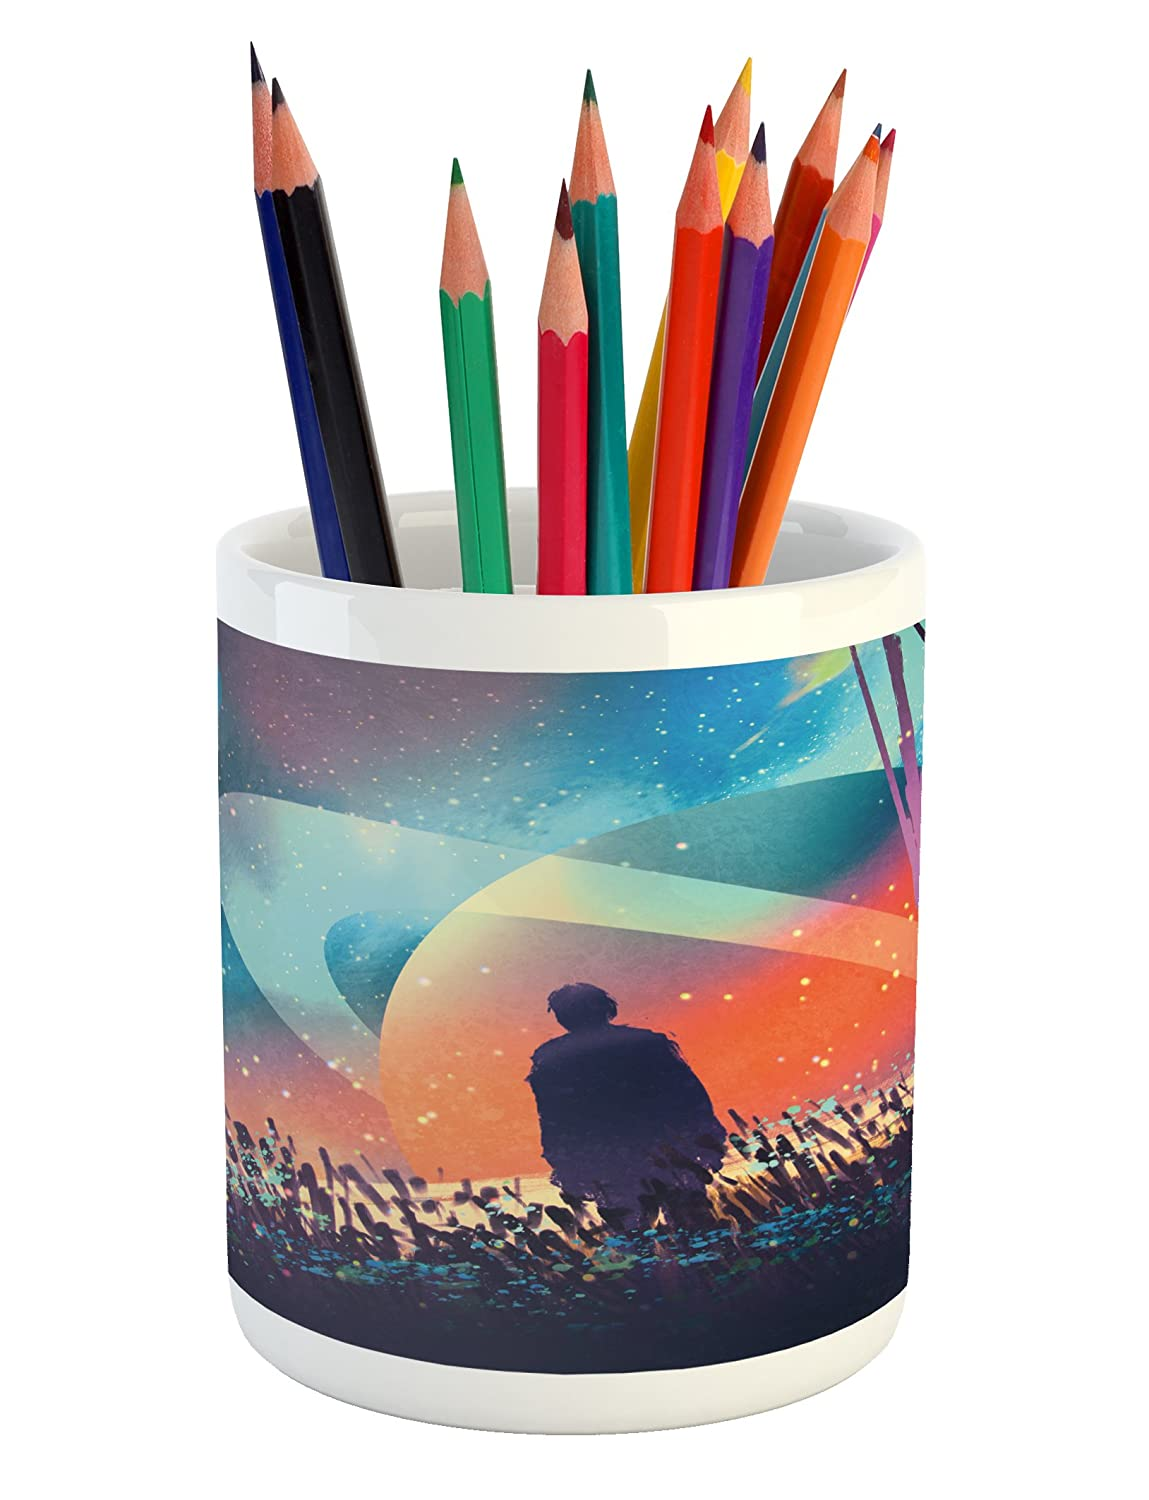 Ambesonne fantasy pencil pen holder man alone under vibrant colored reflections of galaxy planets space cosmos art printed ceramic pencil pen holder for